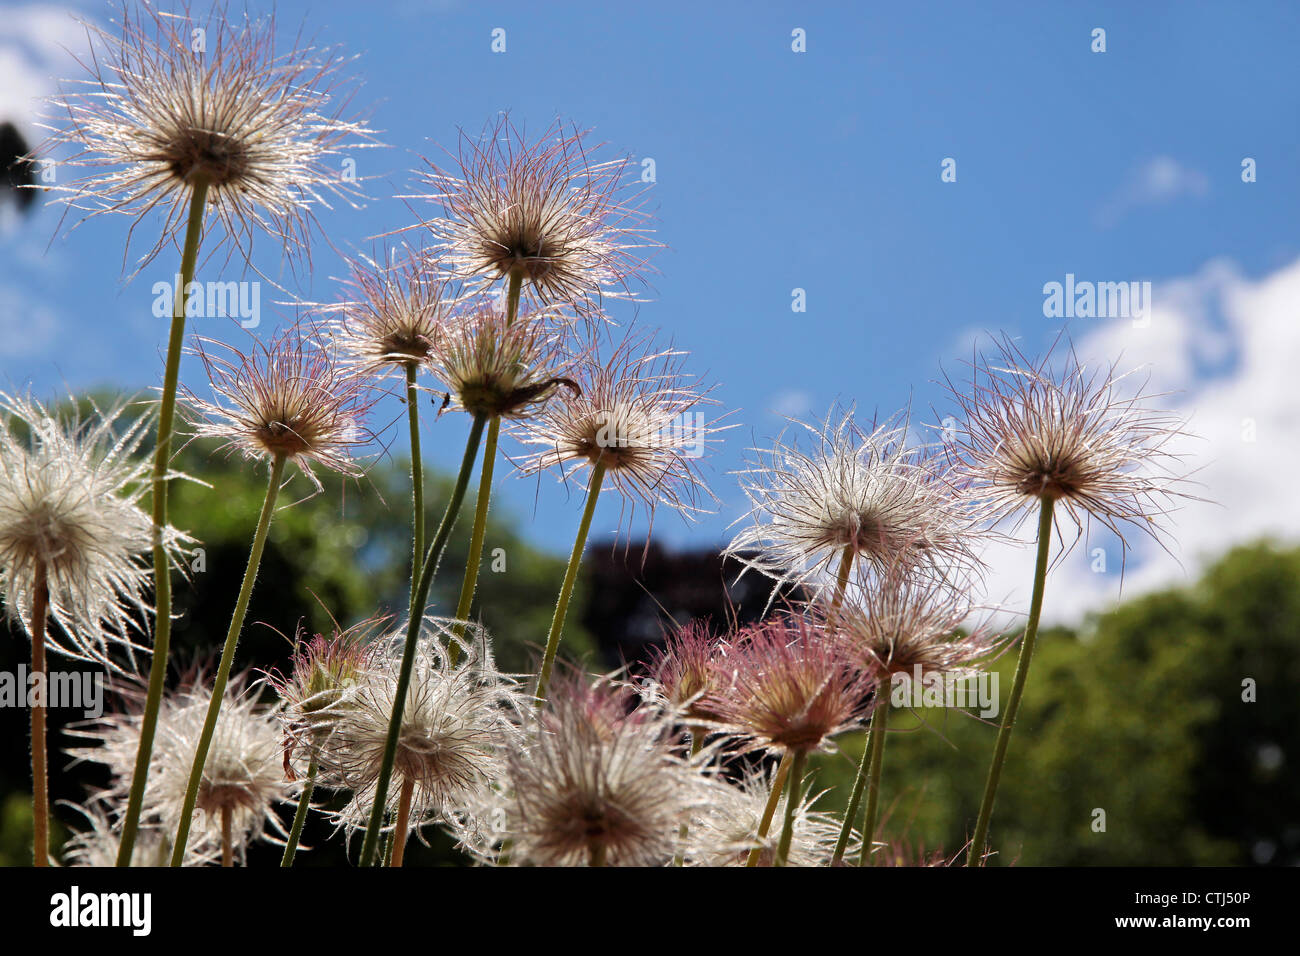 Pulsatilla vulgaris plant in the mountains of New Zealand - Stock Image